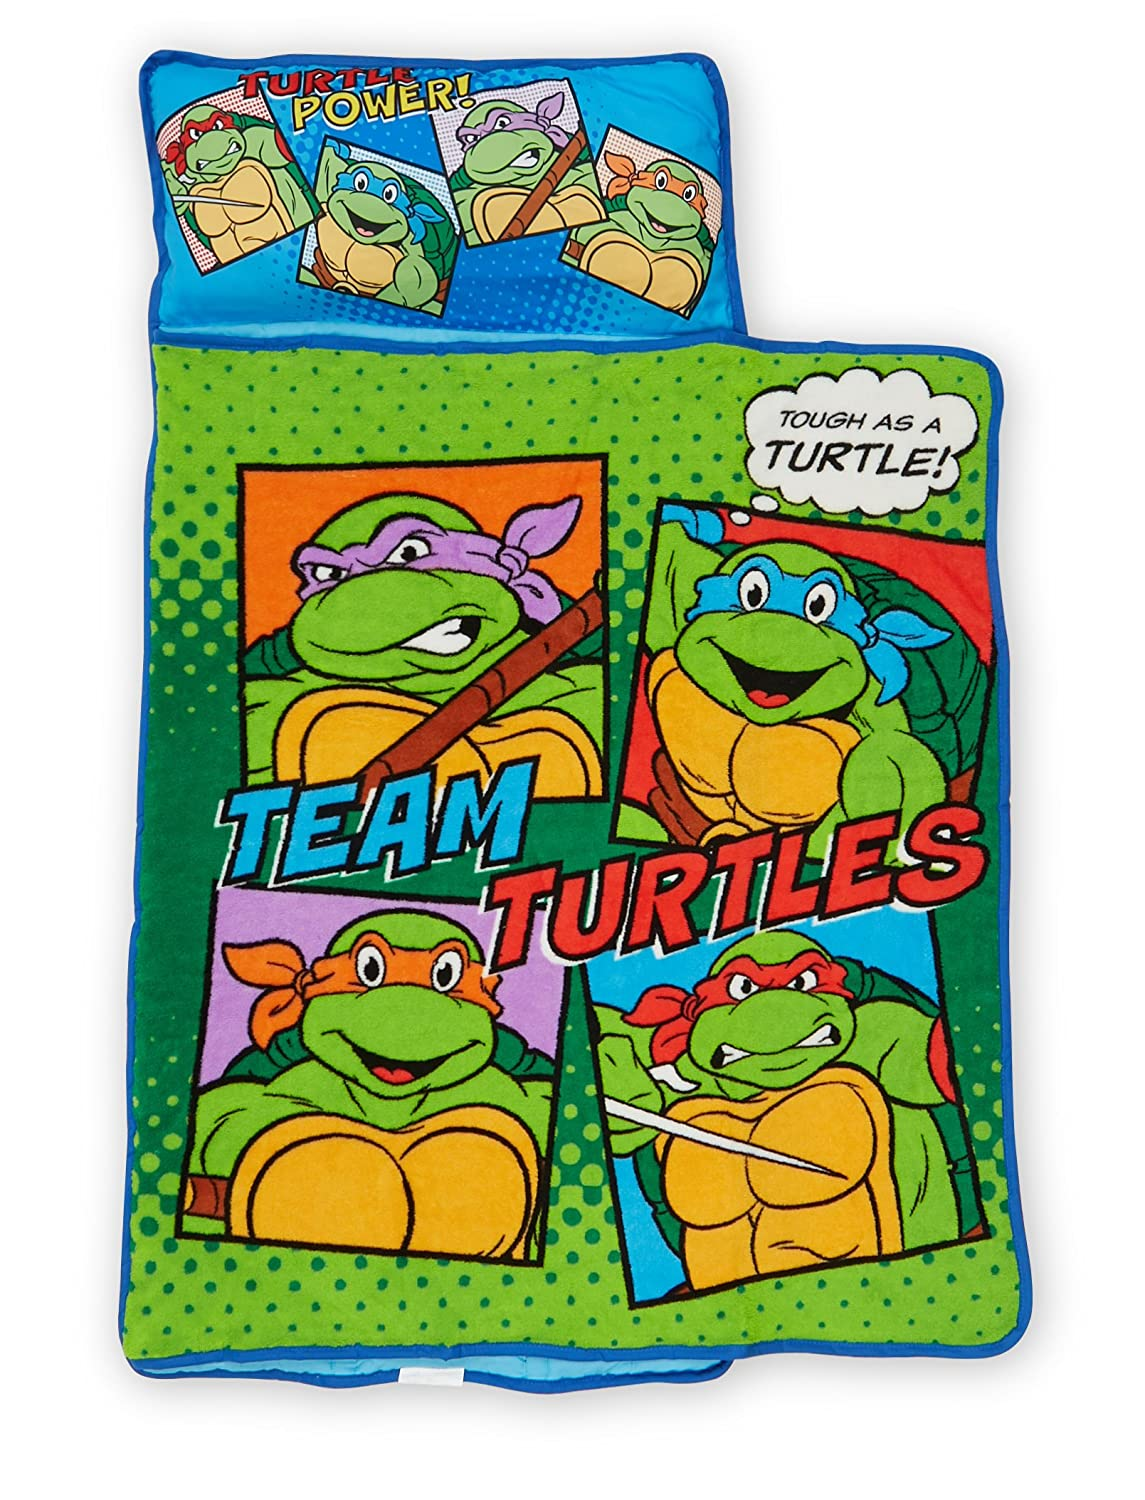 Teenage Mutant Ninja Turtles Toddler Nap Mat - Includes Pillow and Fleece Blanket – Great for Boys and Girls Napping at Daycare, Preschool, Or ...